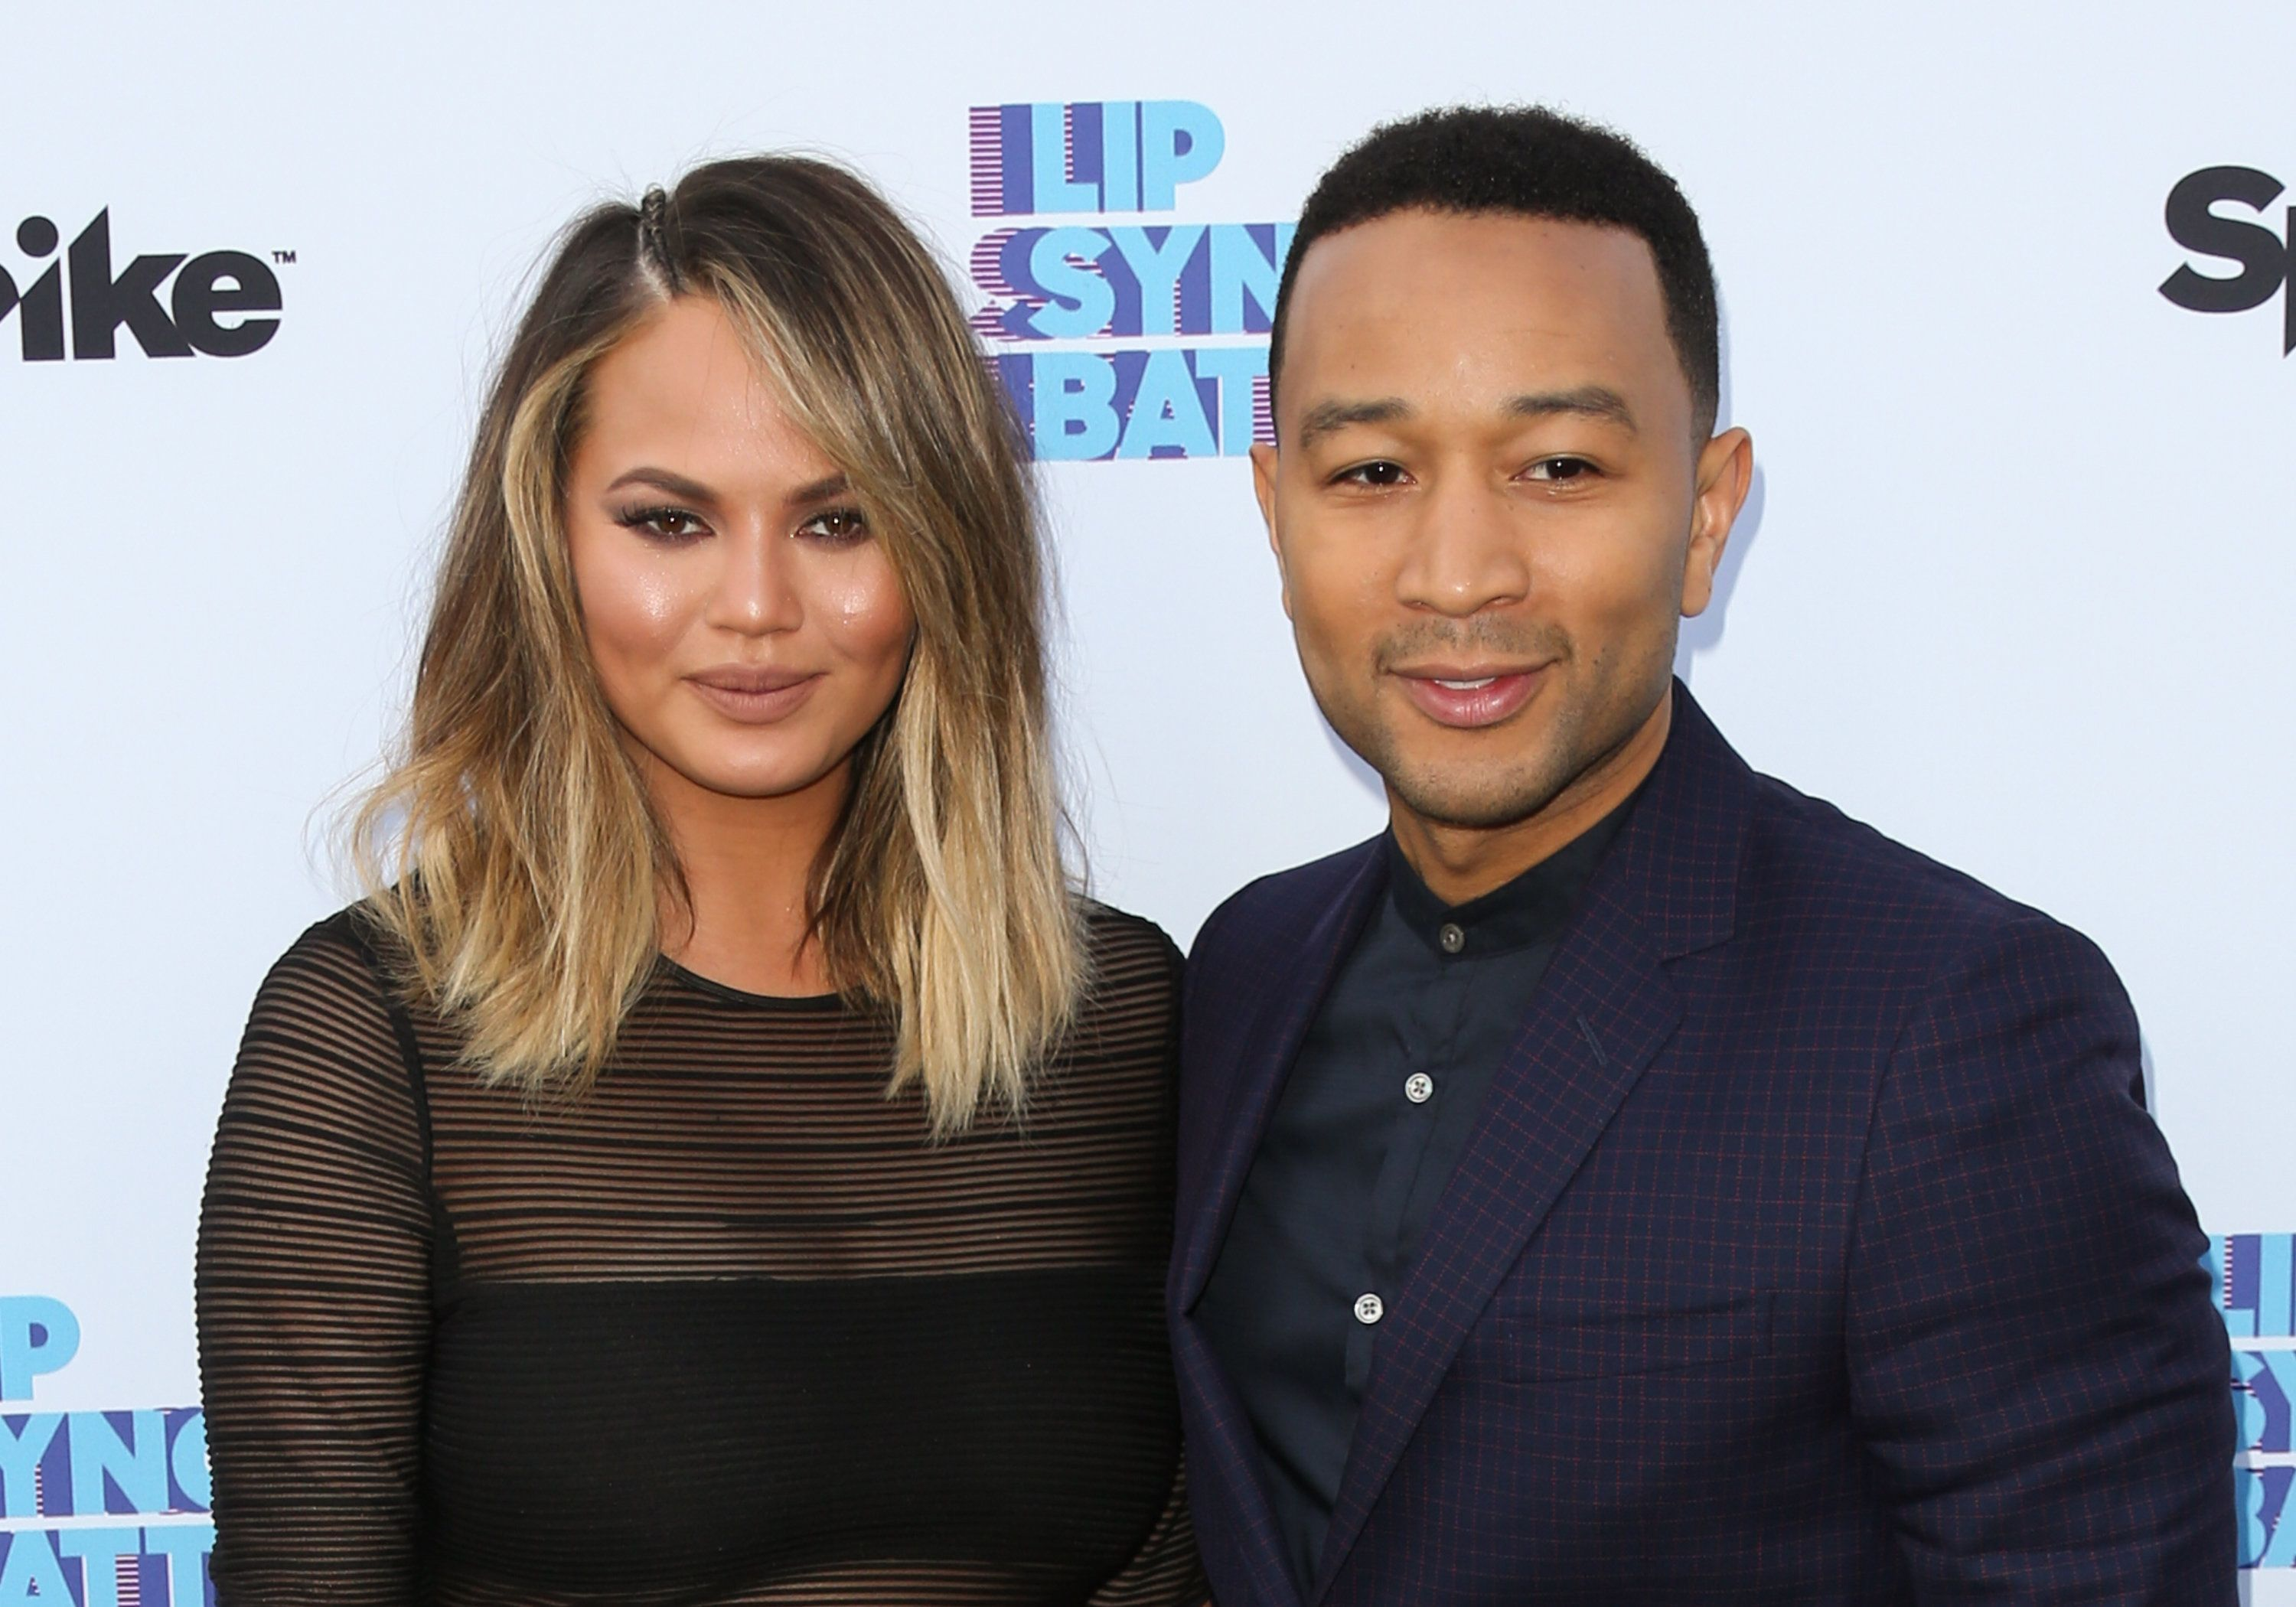 NORTH HOLLYWOOD, CA - JUNE 14:  Fashion Model Chrissy Teigen (L) & her Husband Musician John Legend (R) attend the screening of Spike's 'Lip Sync Battle' on June 14, 2016 in North Hollywood, California.  (Photo by Paul Archuleta/FilmMagic)